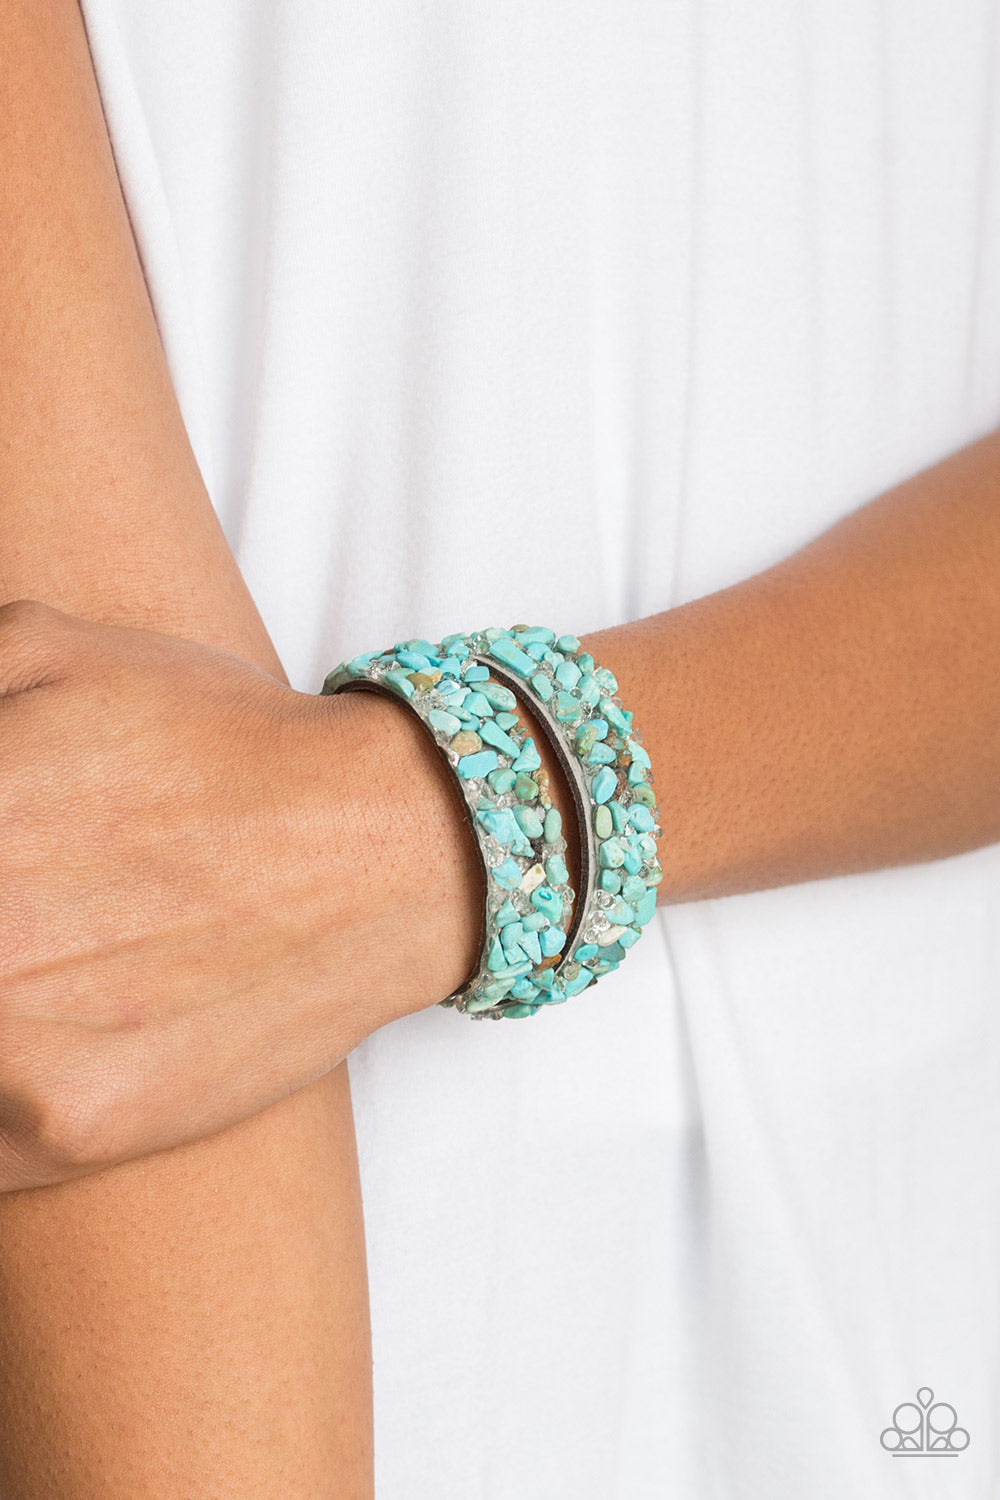 CRUSH To Conclusions - Blue Paparazzi Bracelet - Pink Dragon Jewels